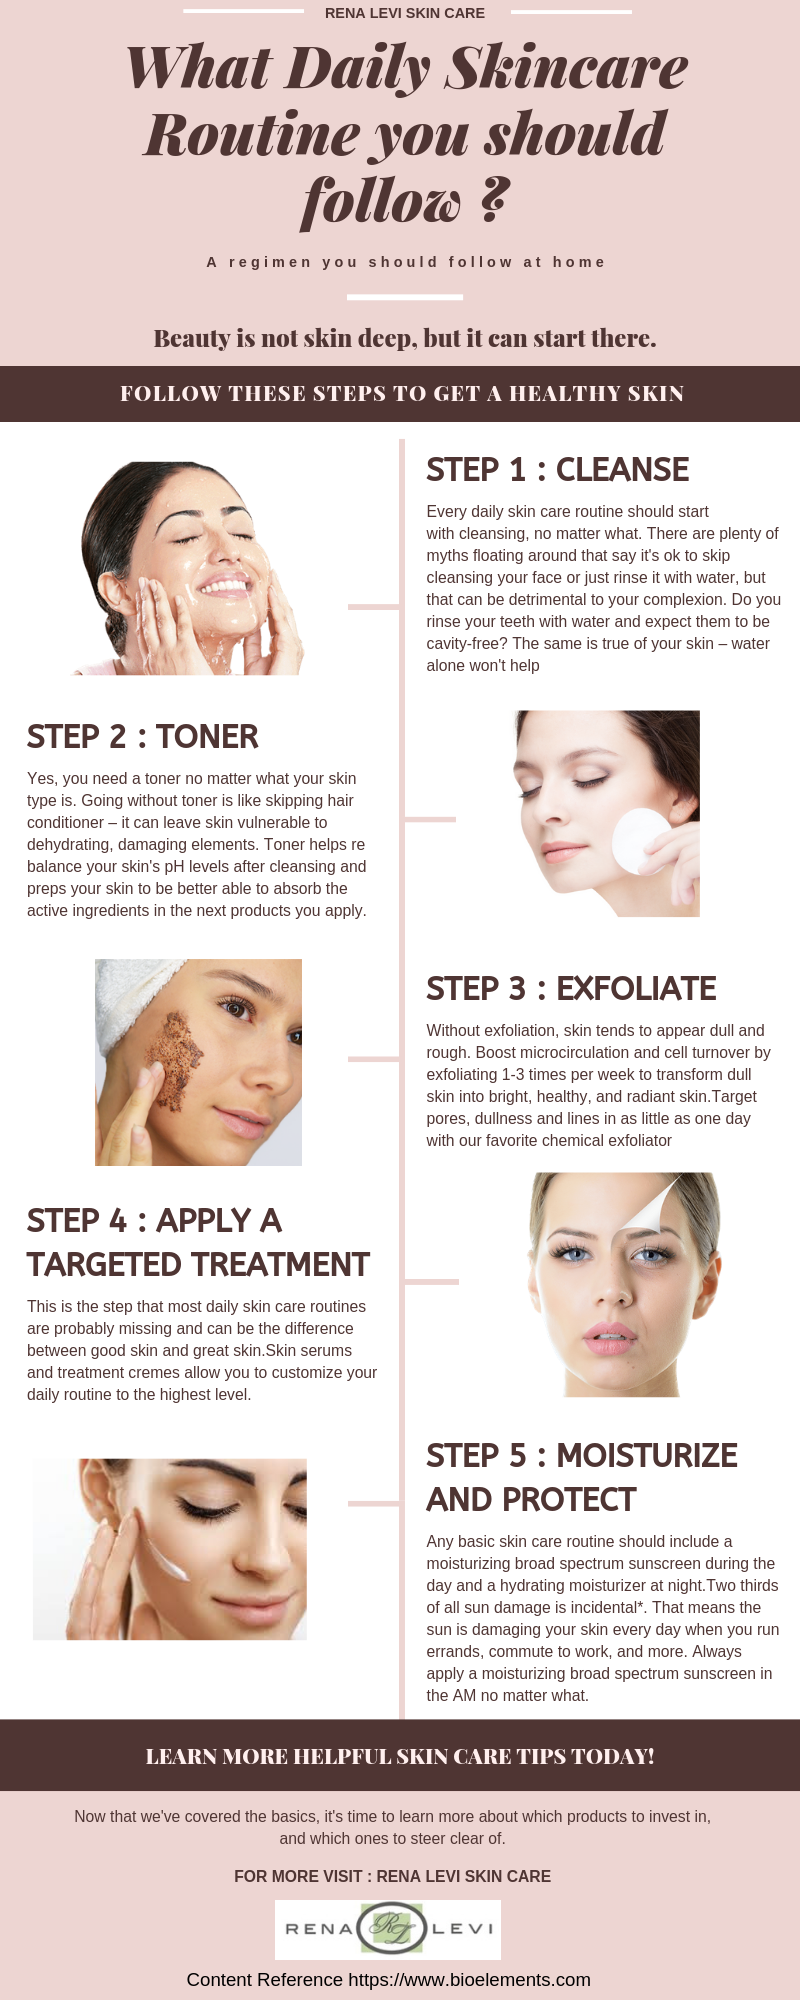 Worried What Routine You Should Follow For Your Skin Then Just Follow These Simple Steps Care Dai Daily Skin Care Routine Daily Skin Care Skin Care Routine